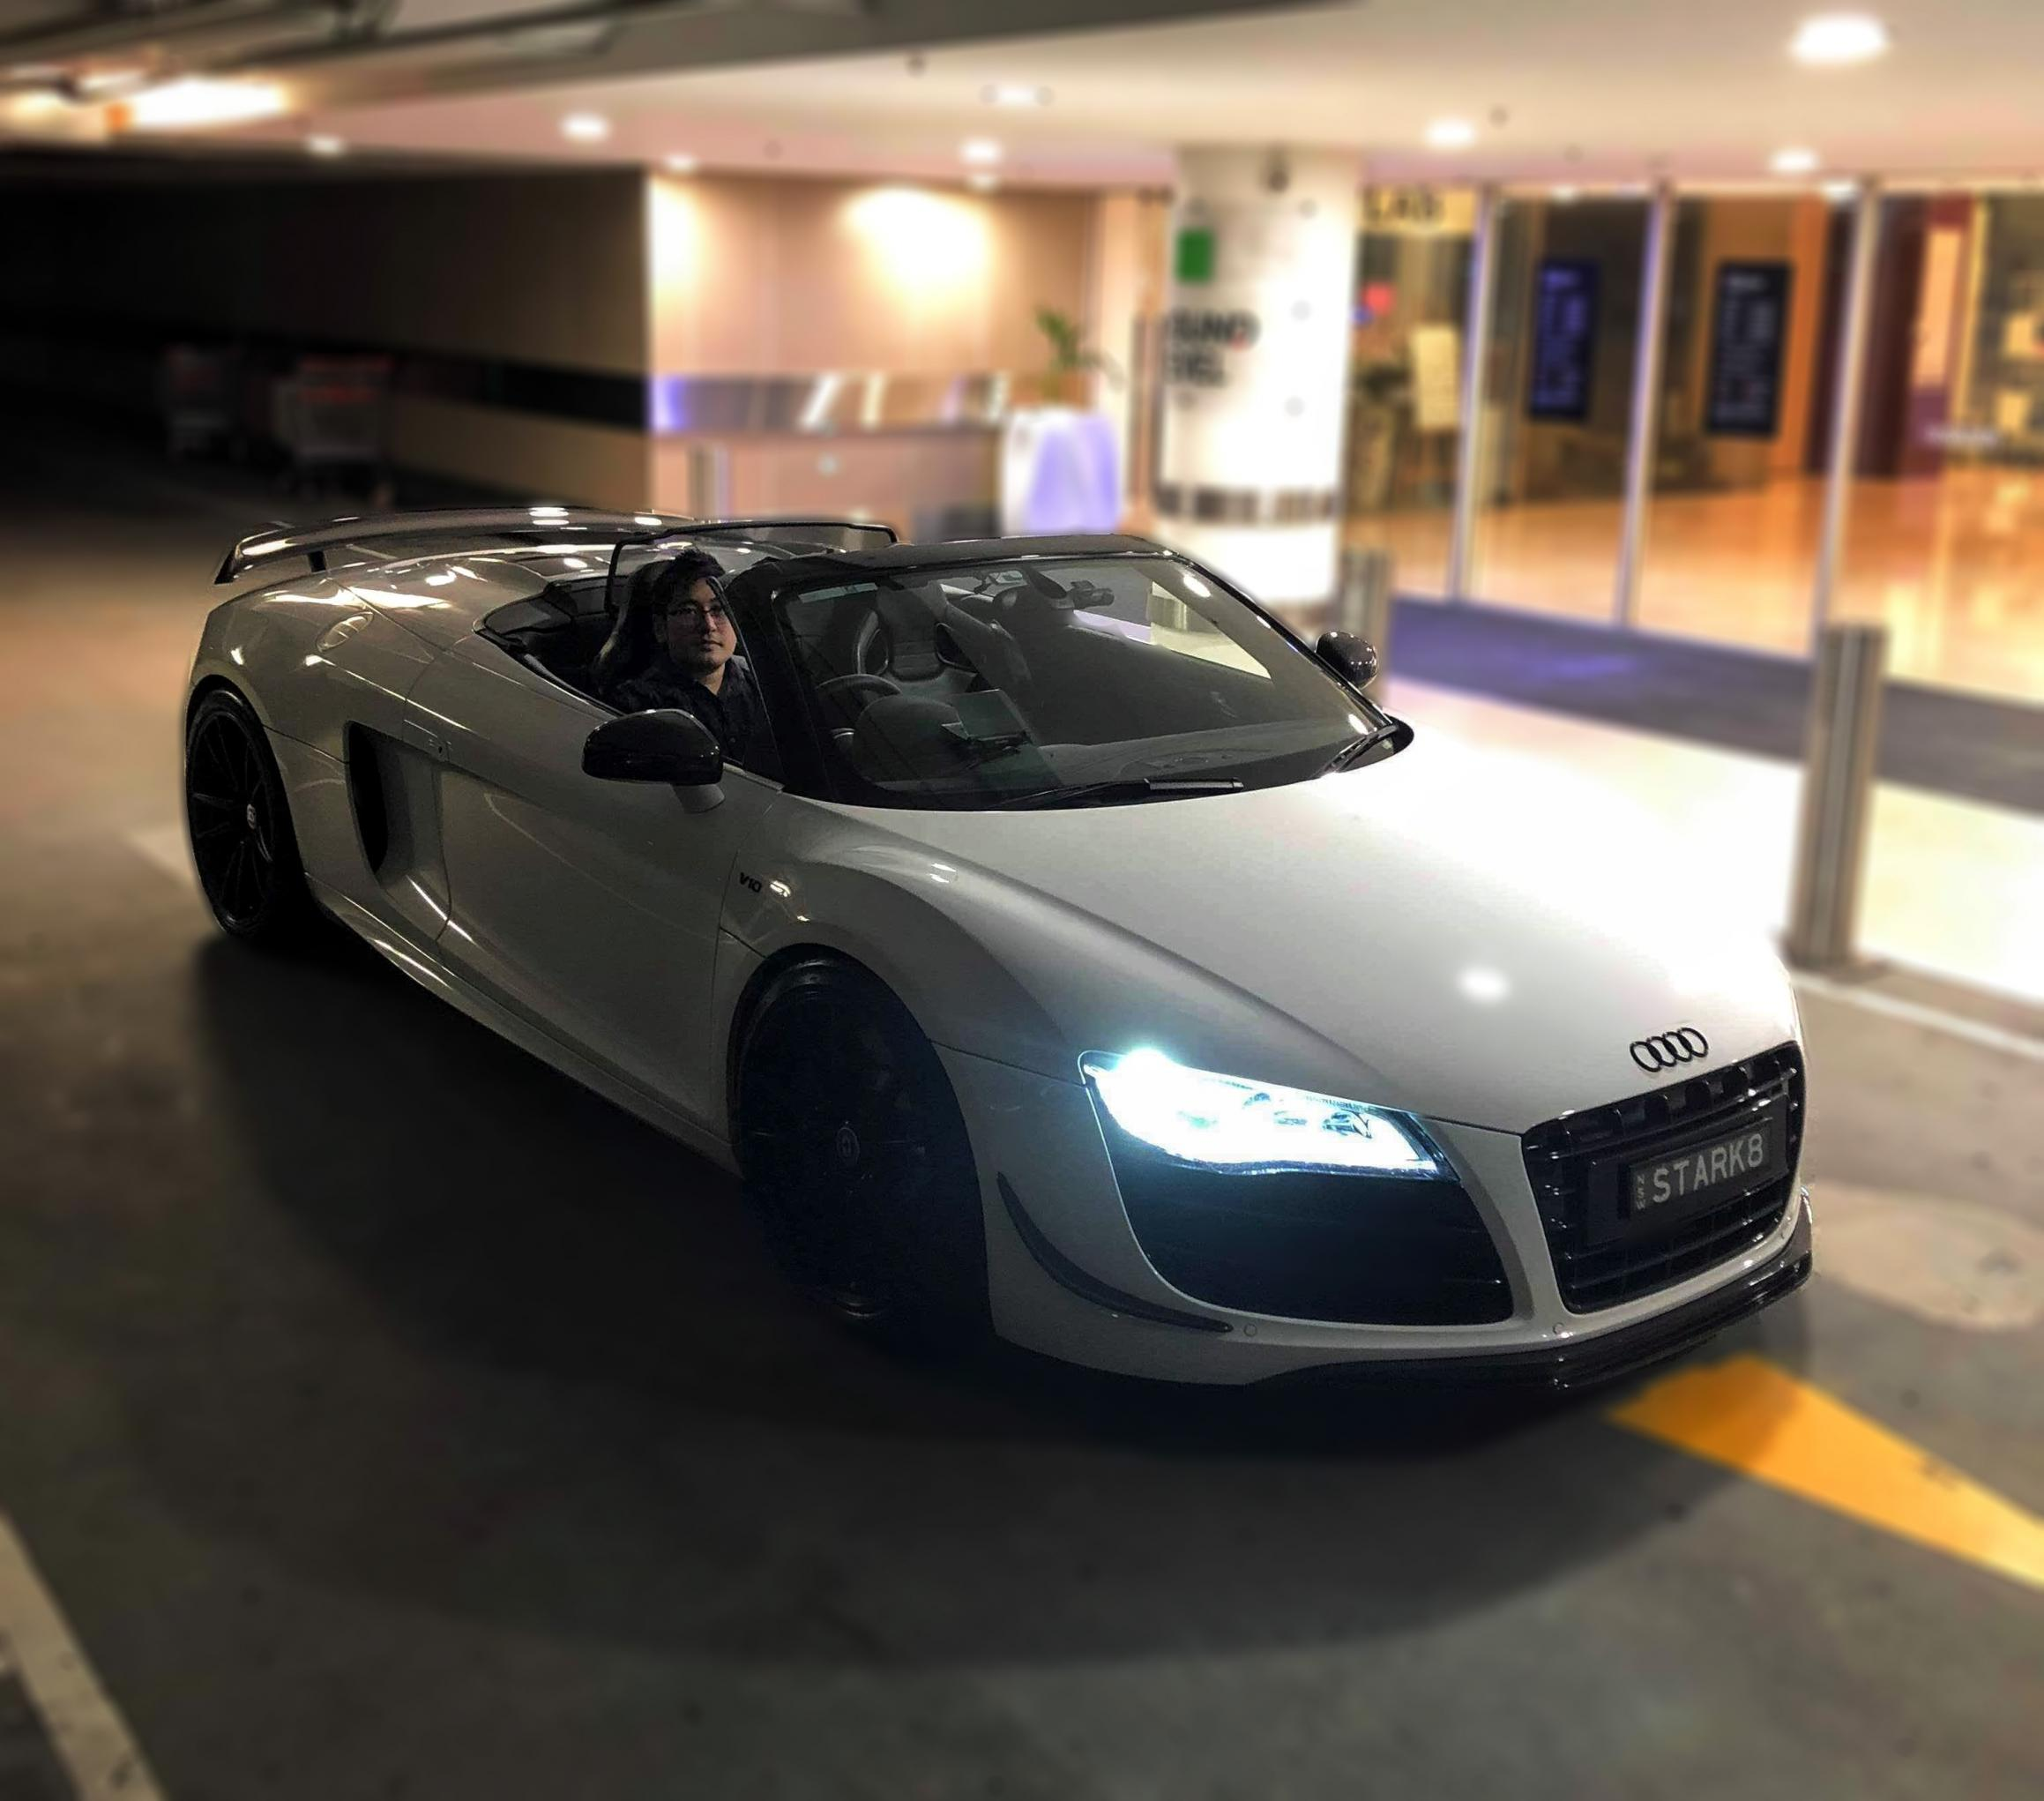 Owners photo with their R8.-1.jpg